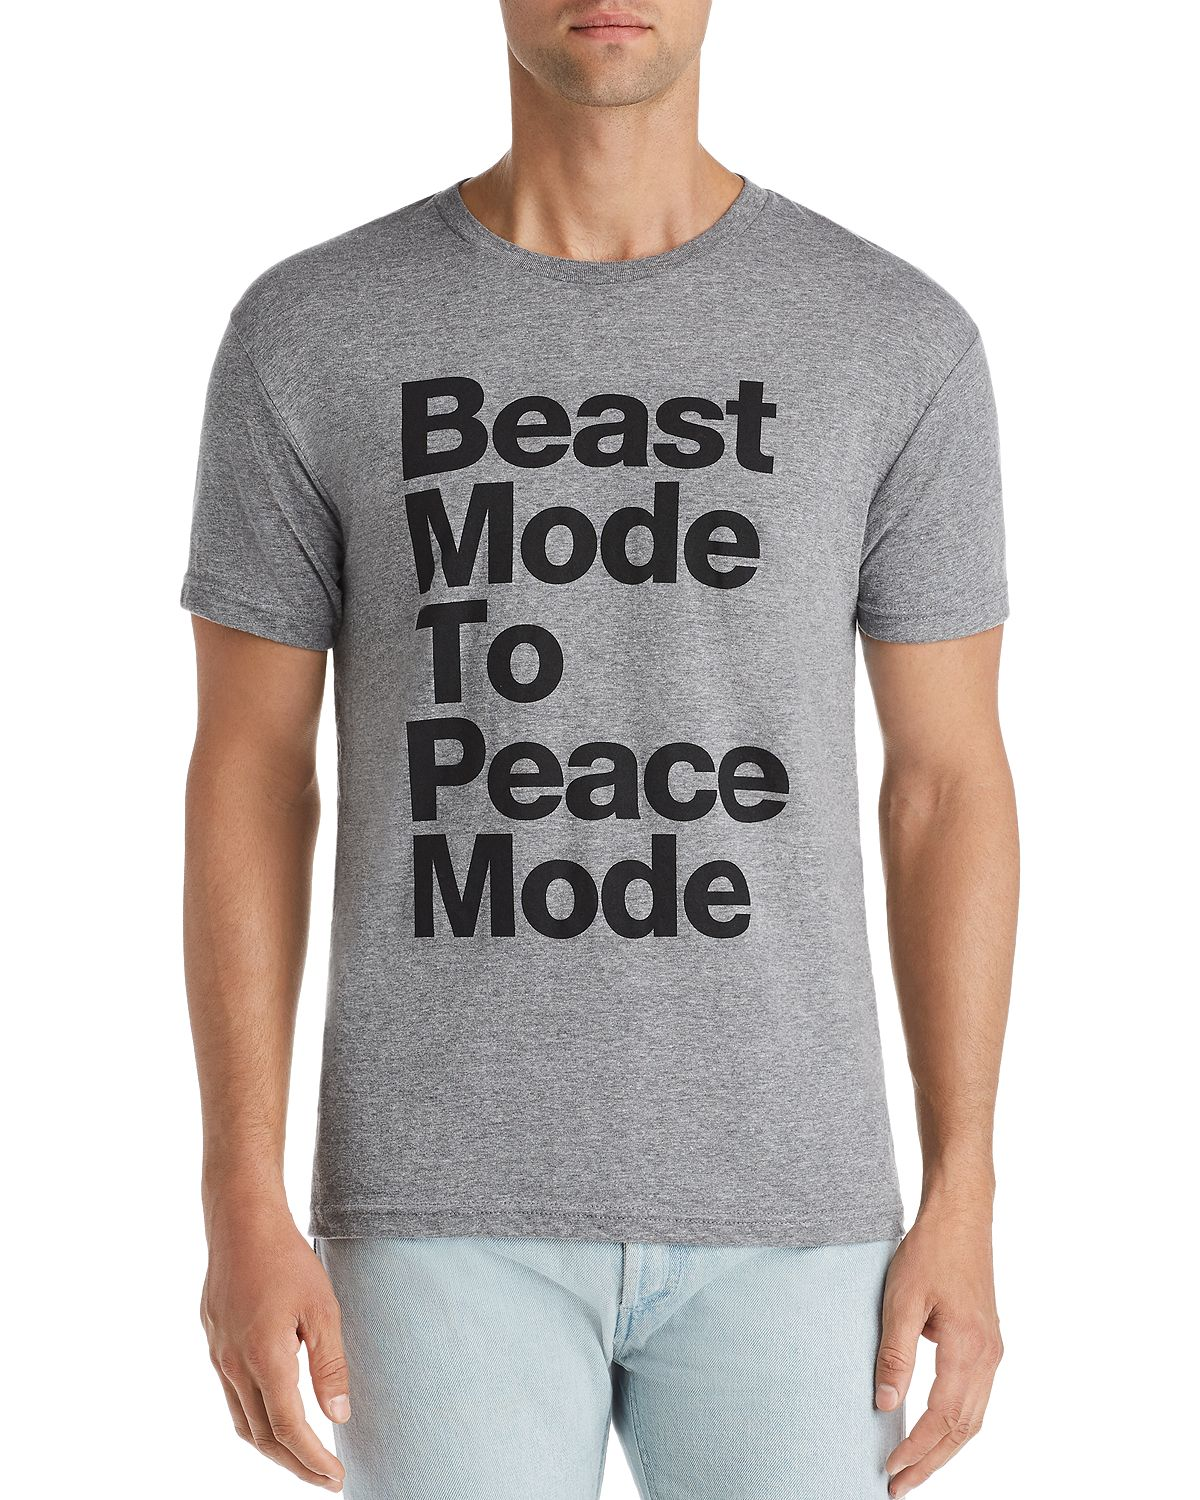 Kid Dangerous Beast Mode Graphic Tee